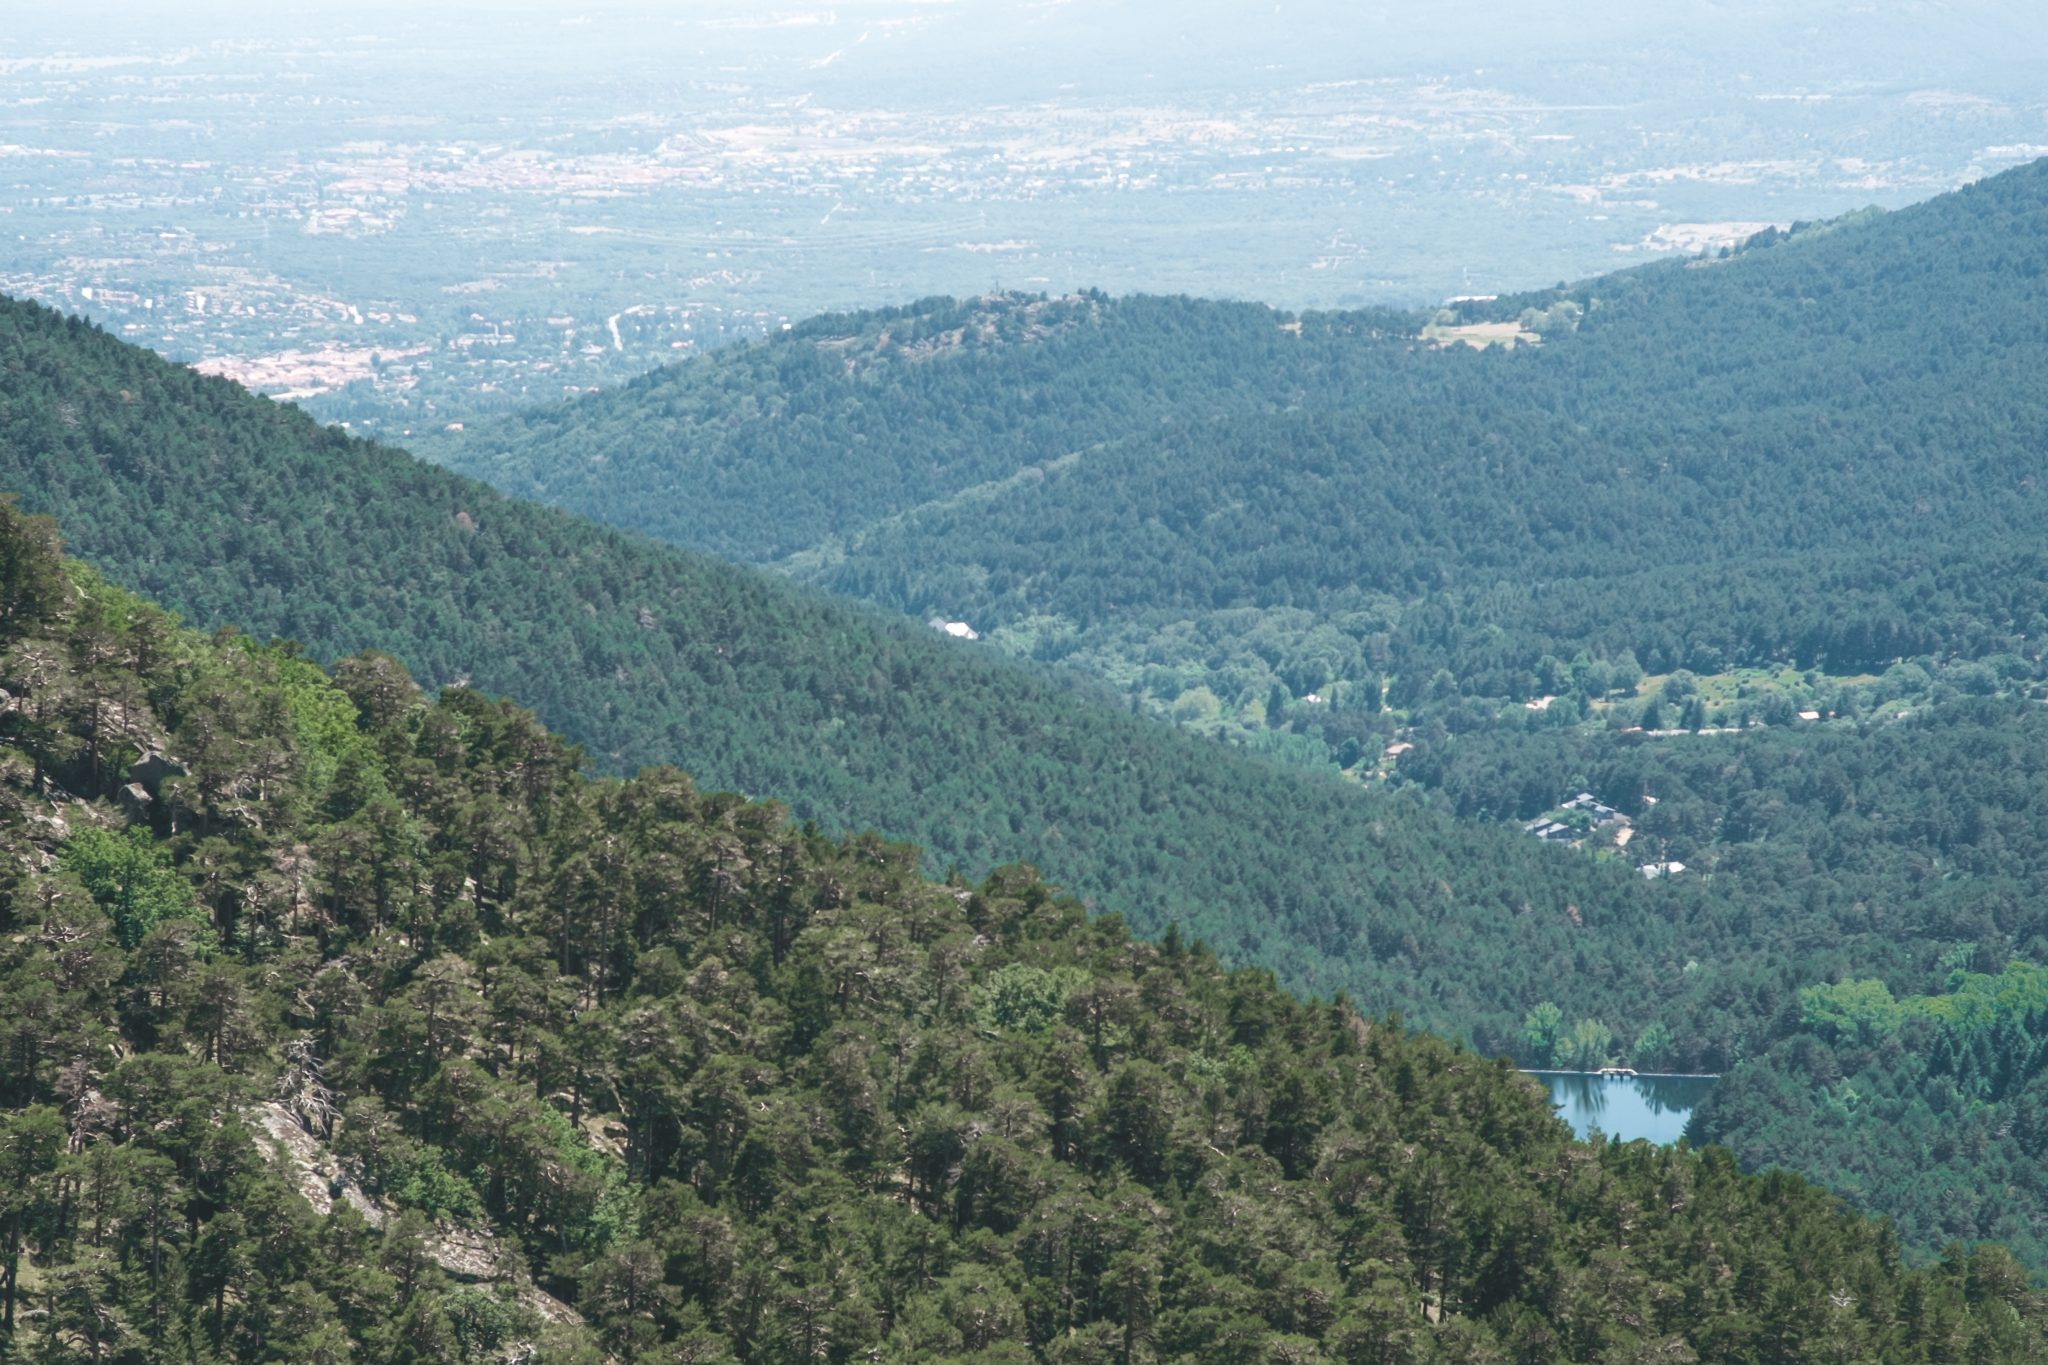 Panoramic view in the region of the Escorial by Jo Kassis